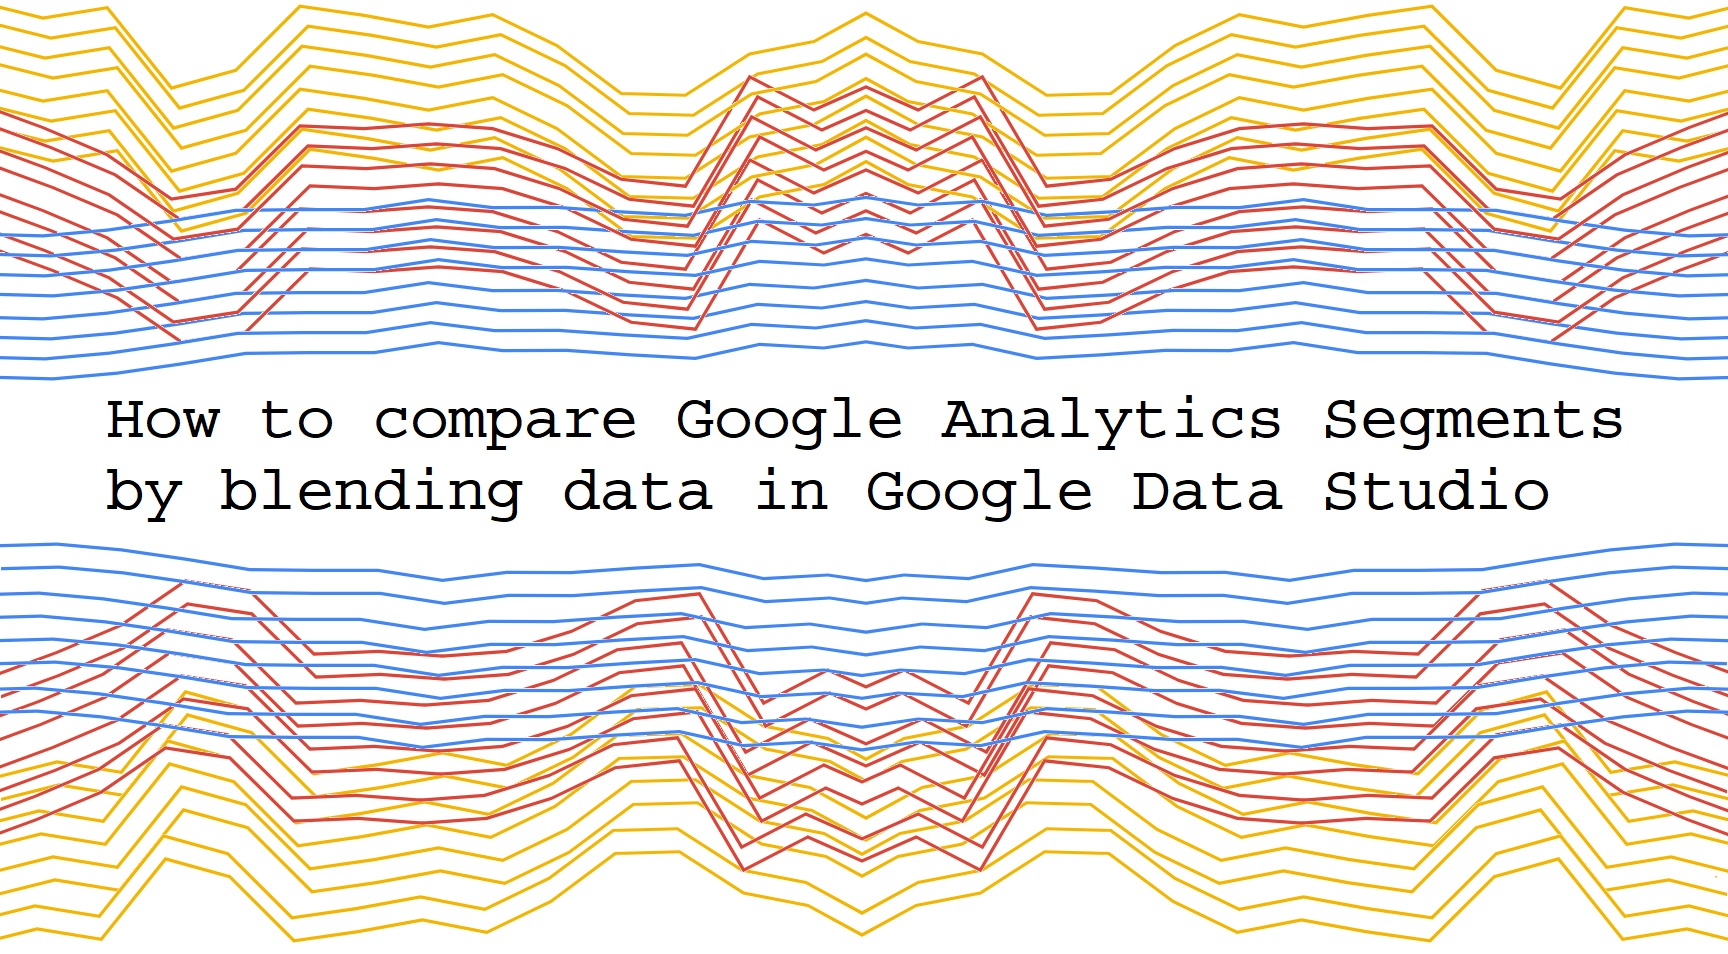 How to compare Google Analytics Segments by blending data in Google Data Studio